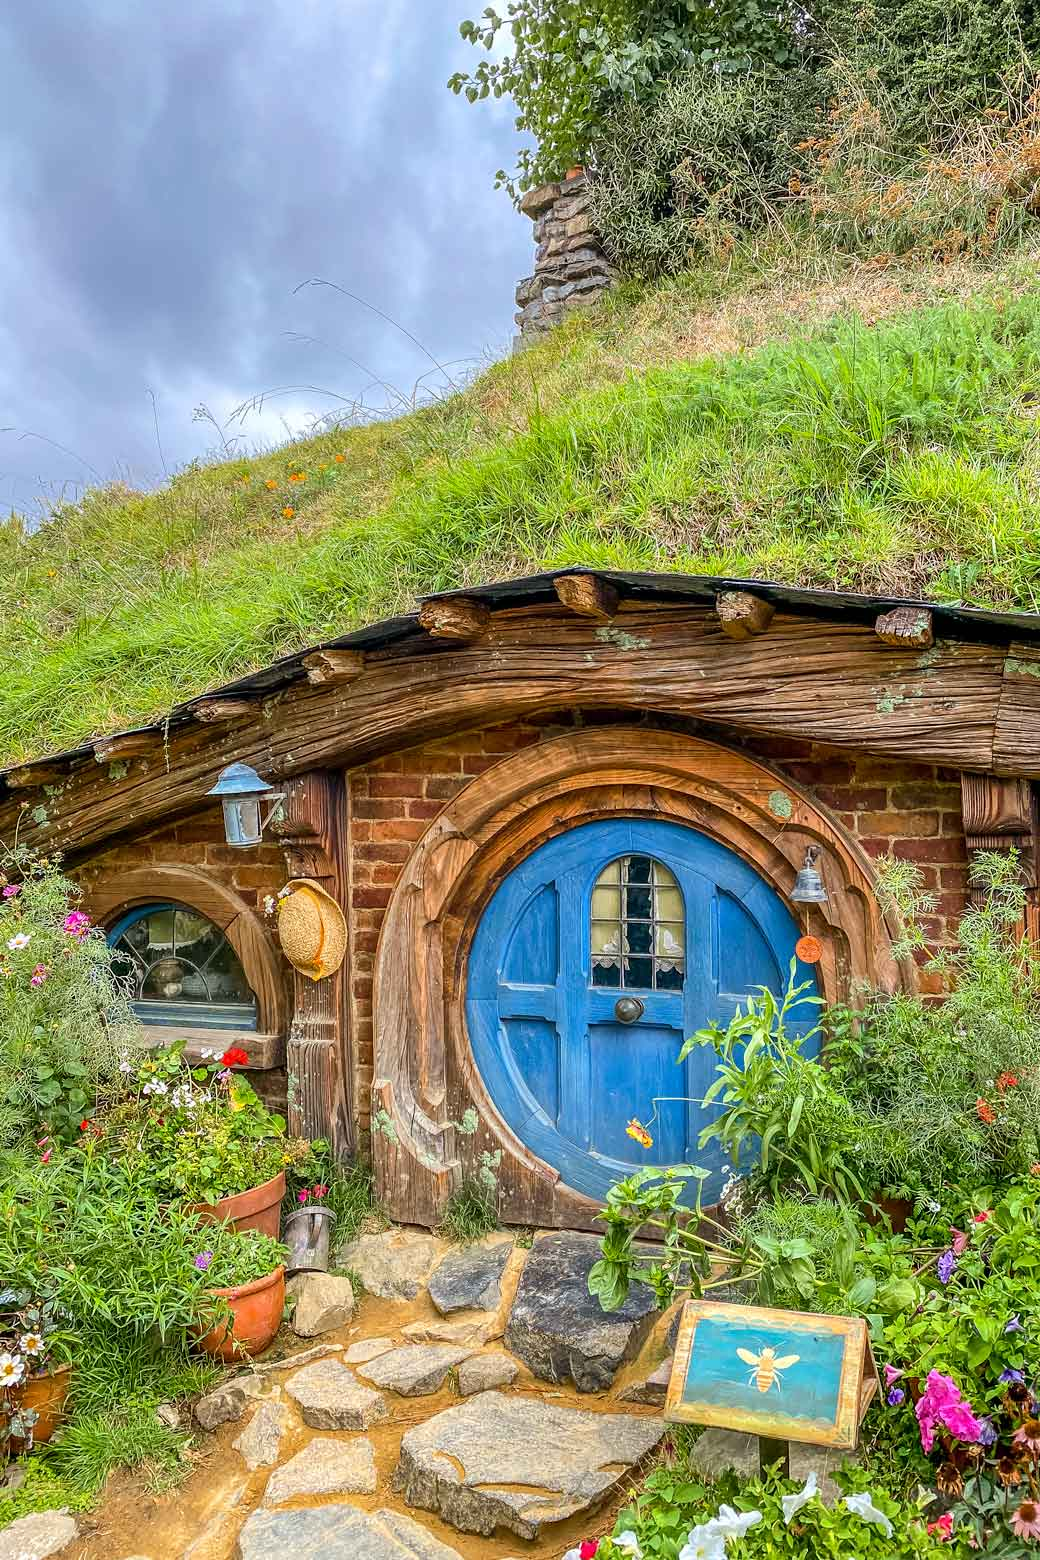 Hobbit hole at Hobbiton Movie Set